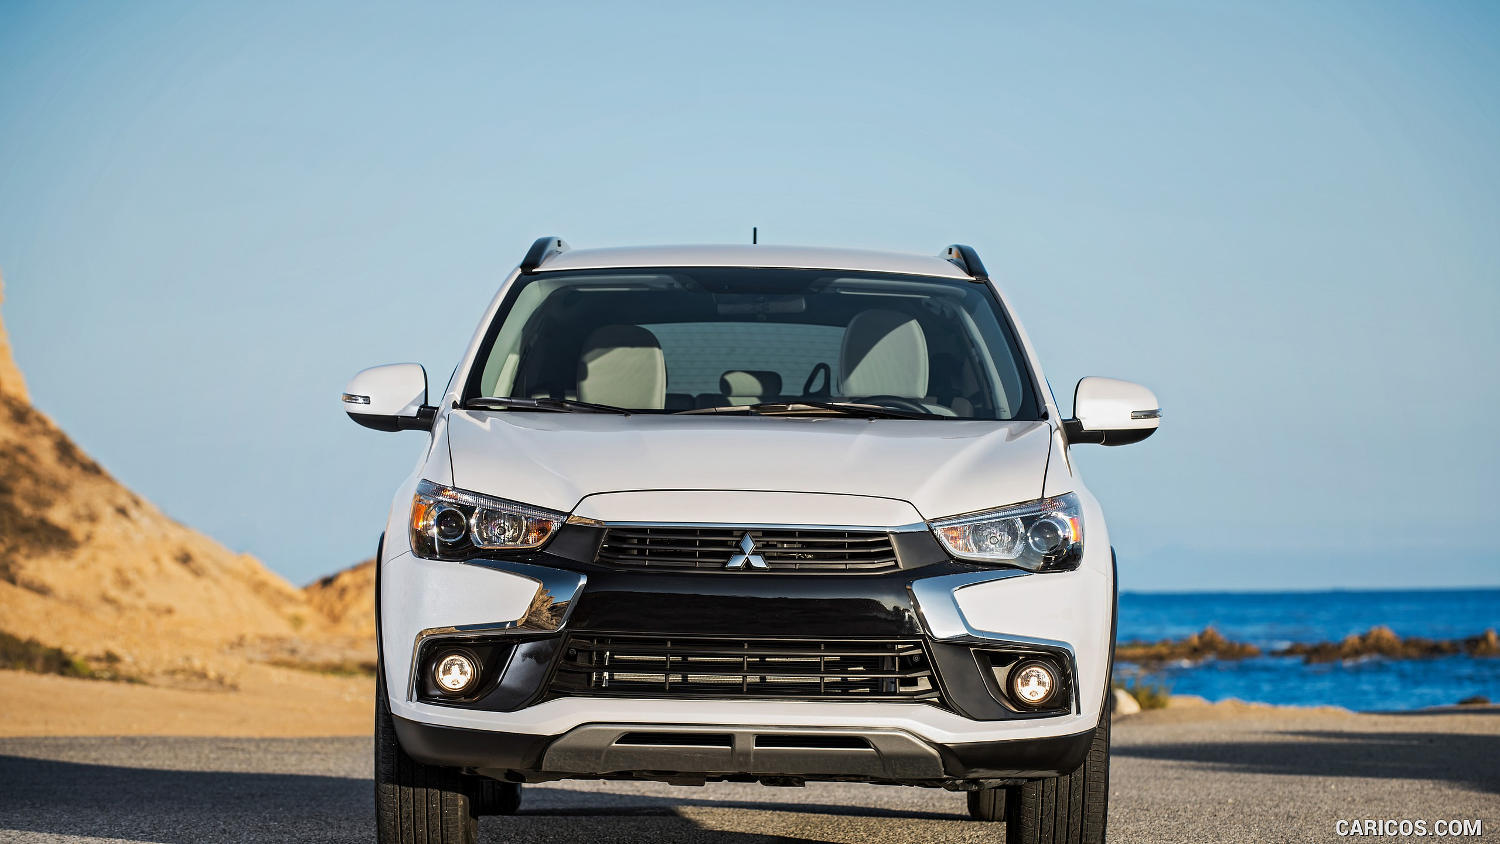 Mitsubishi outlander vs holden captiva